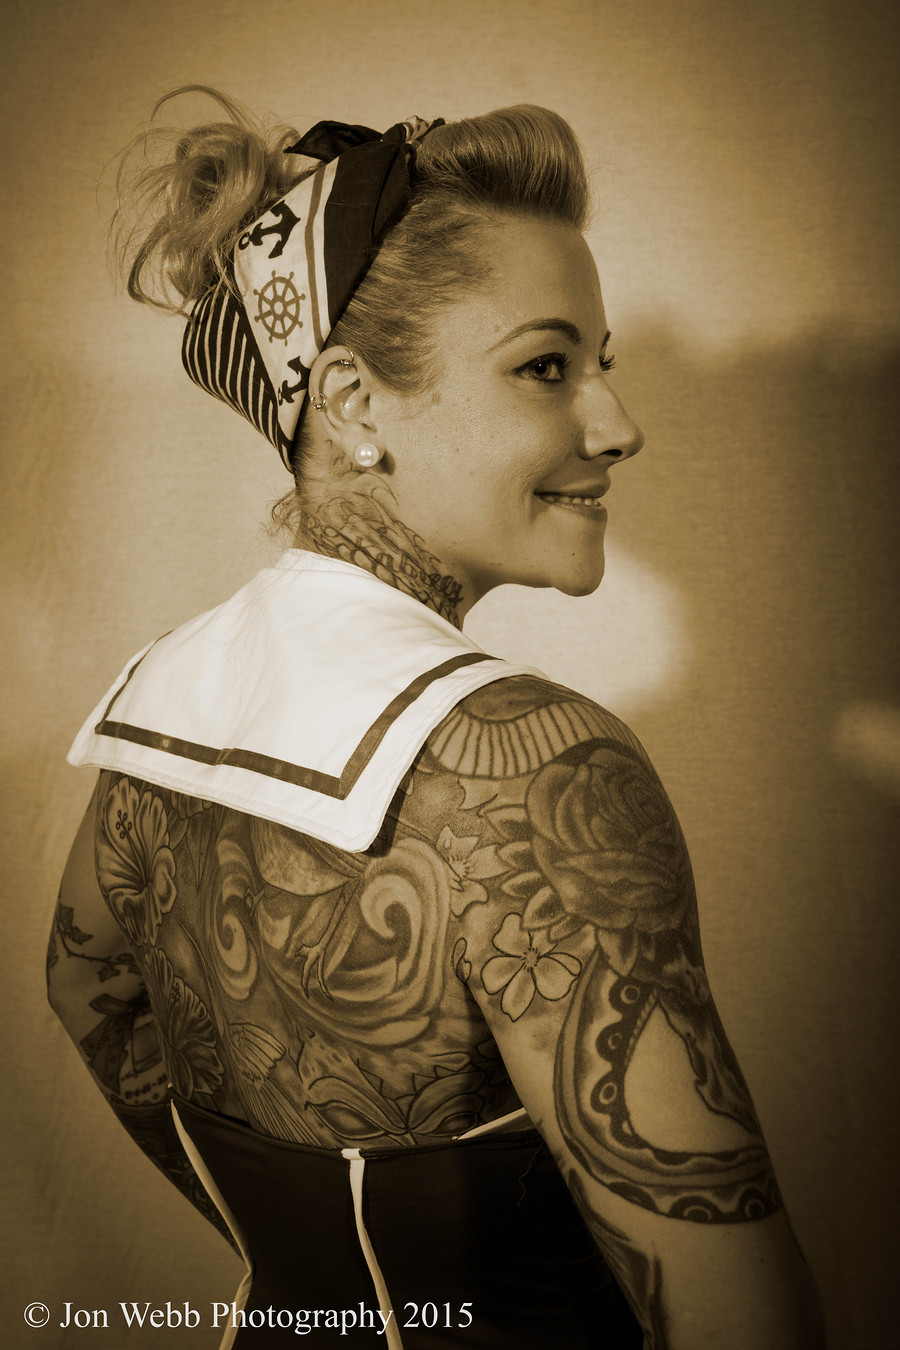 Sepia Pin Up / Photography by Jon Webb Photography uk, Post processing by Jon Webb Photography uk / Uploaded 30th October 2016 @ 11:46 AM